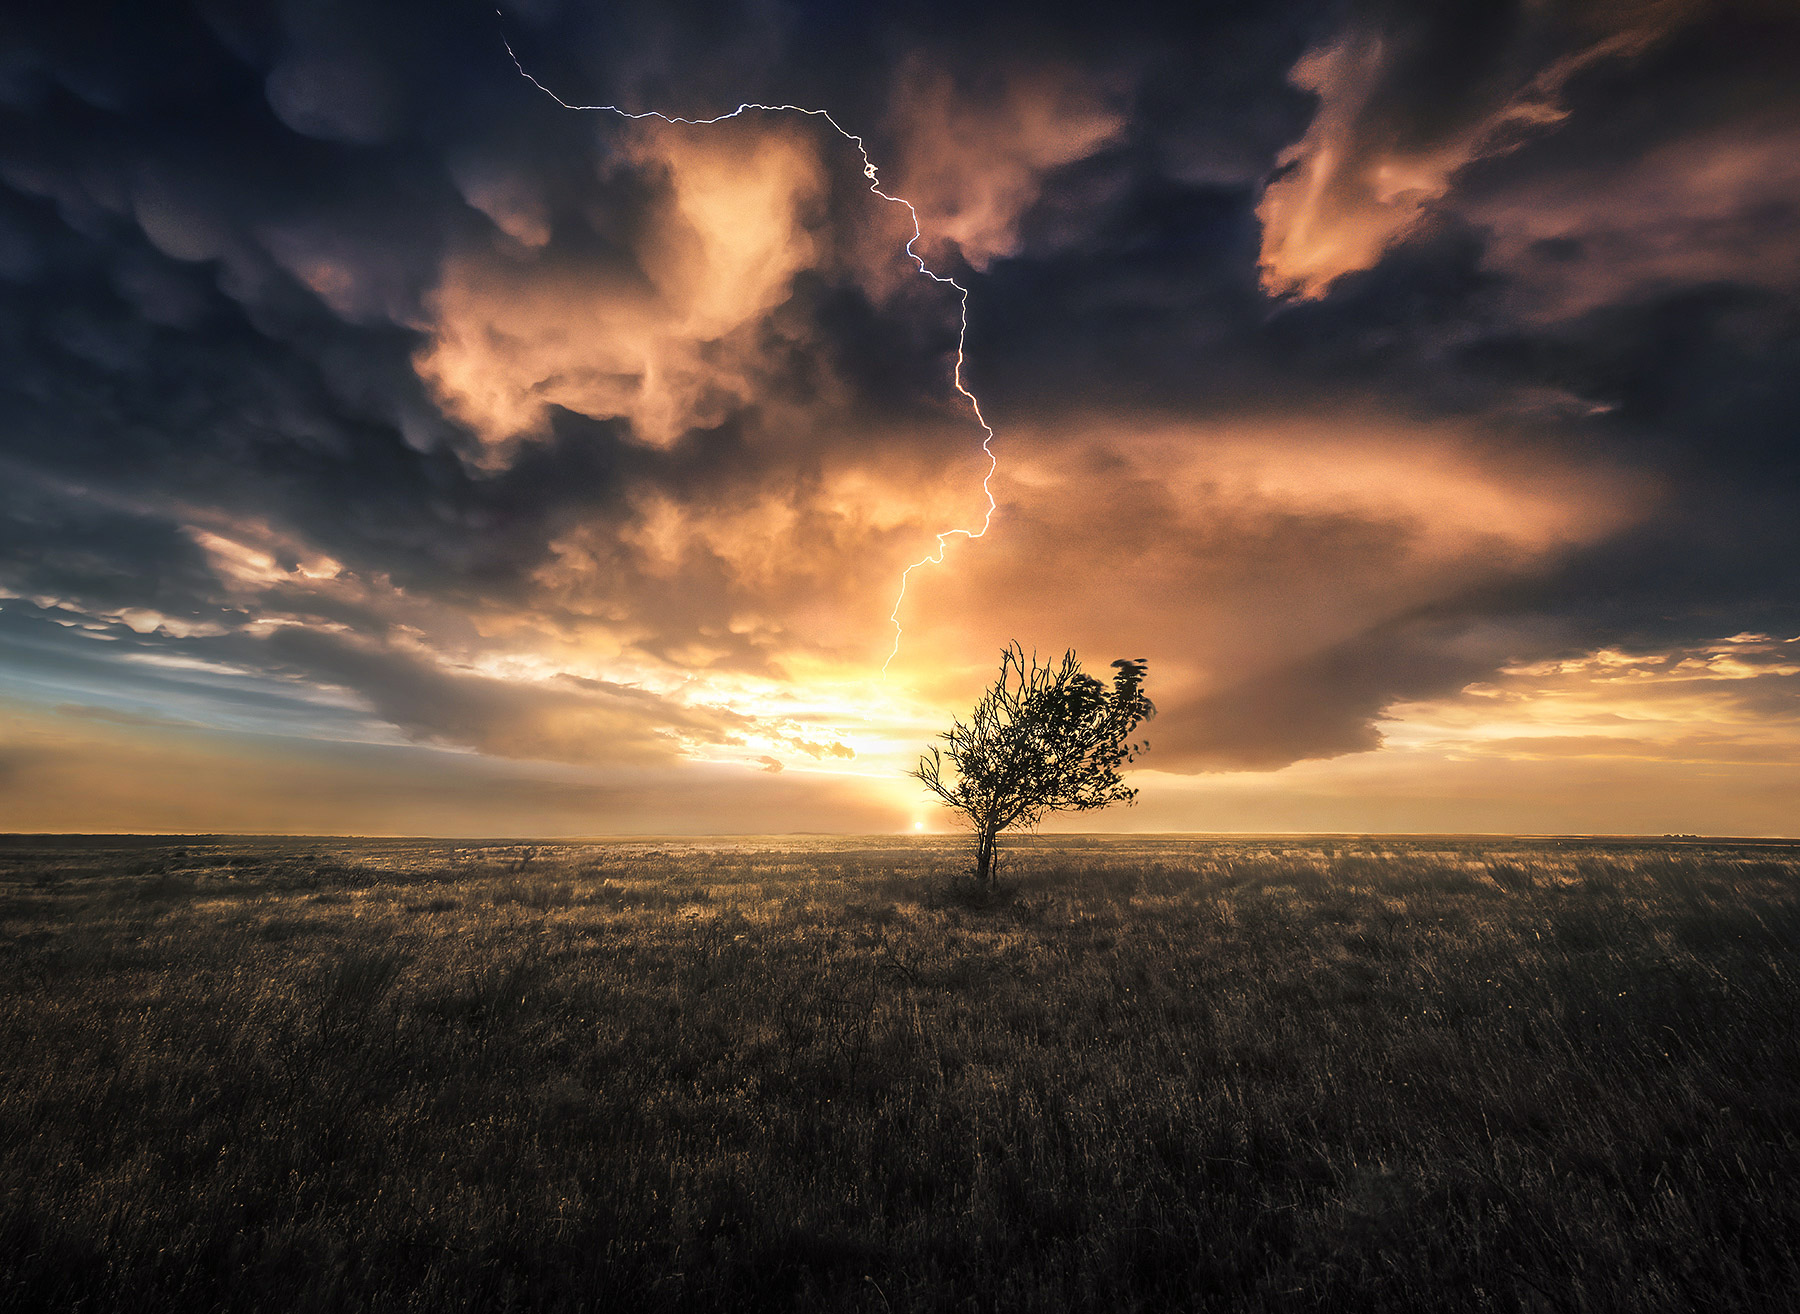 texas, lone tree, storm, lightning, thunderstorm, mammatus, photo